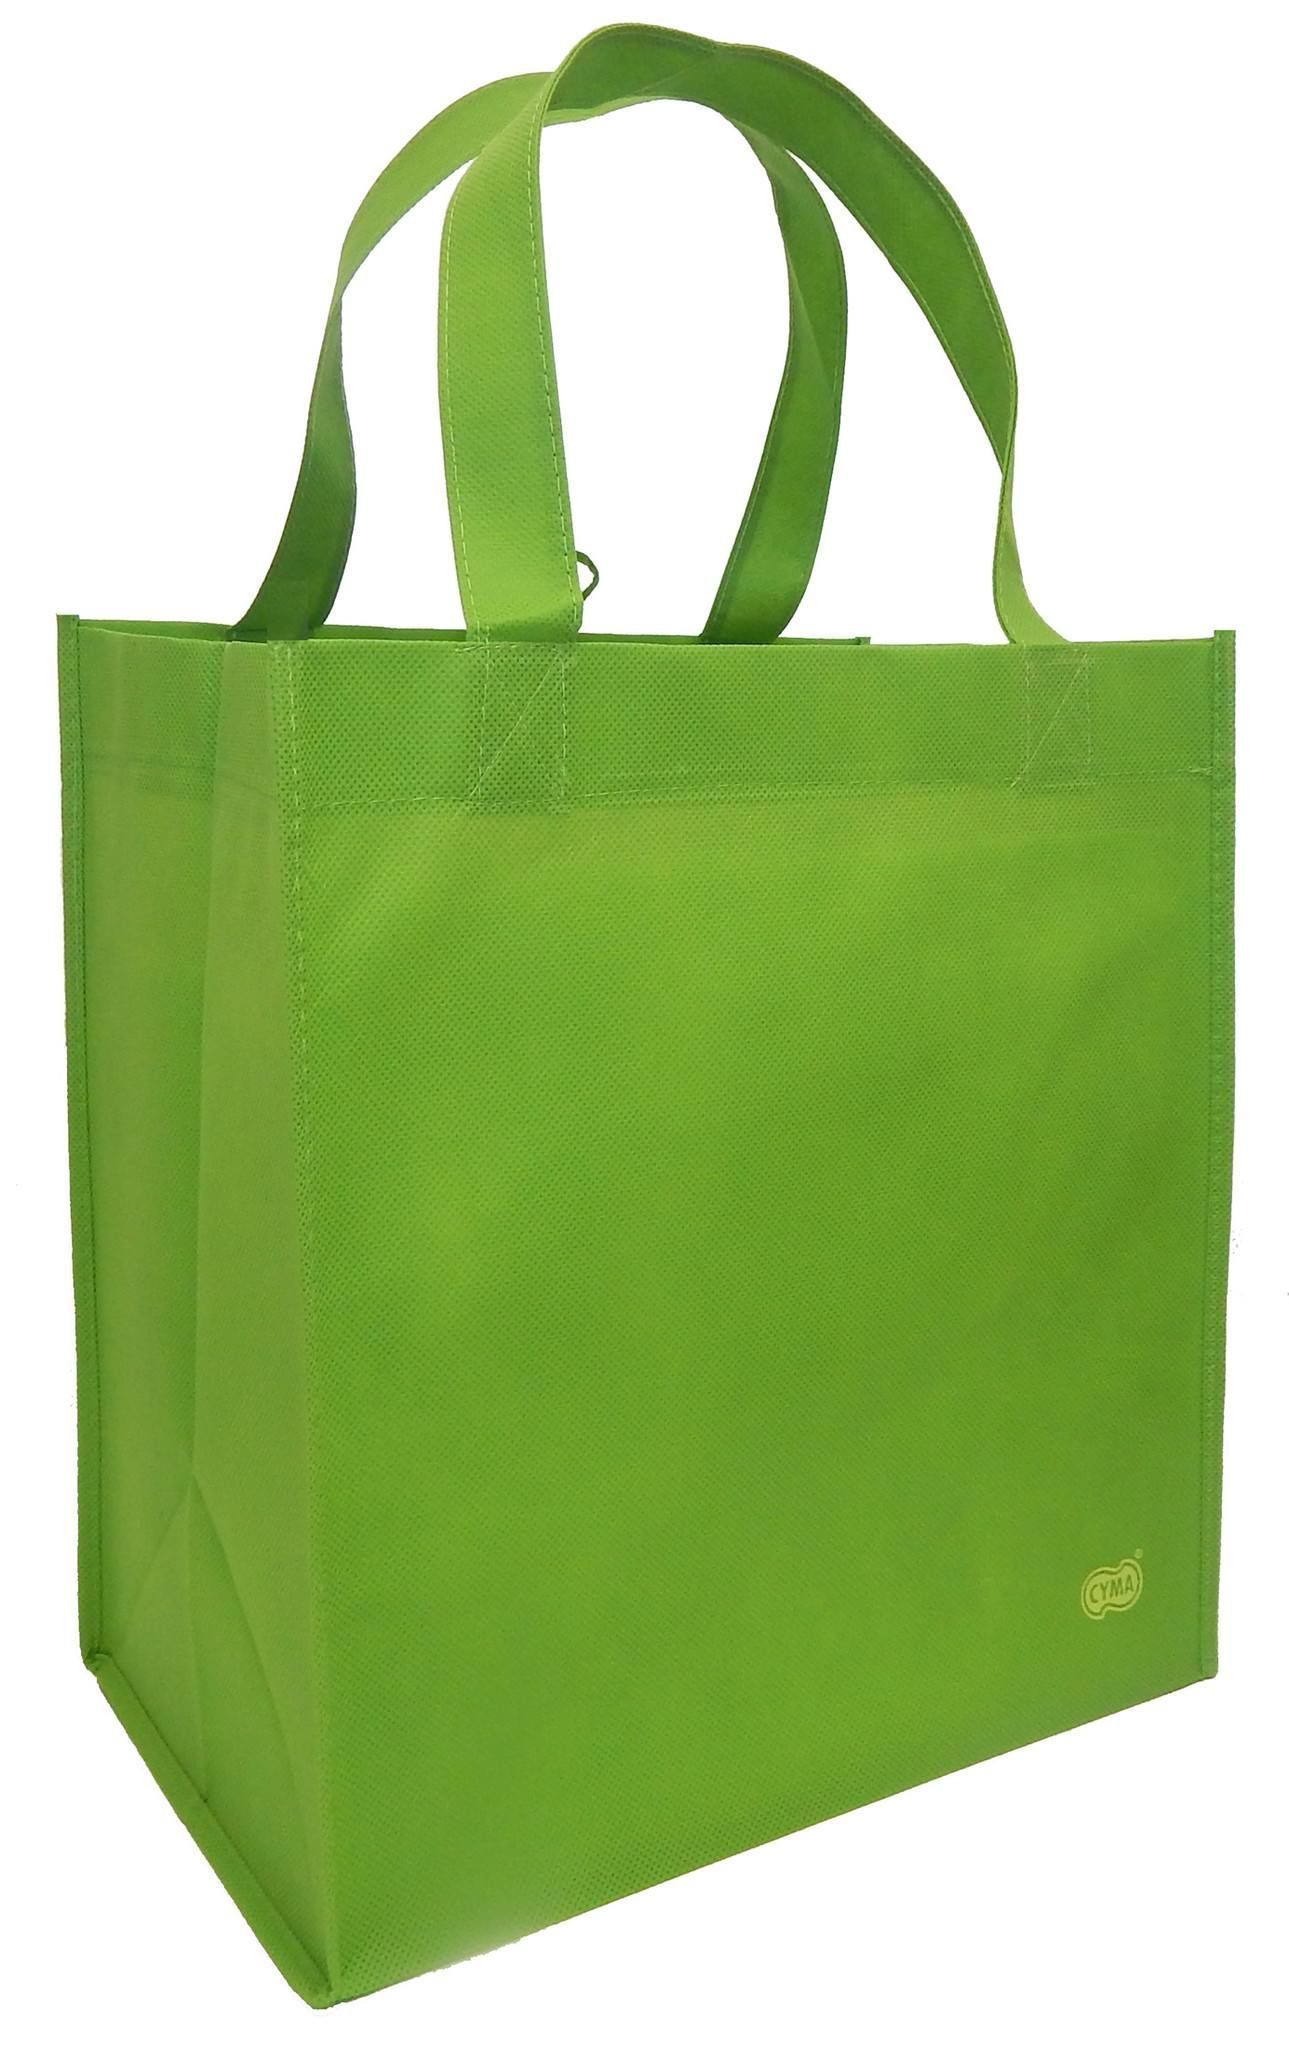 Grocery Shopping Bags Reusable Tote Large Capacity Foldable Washable W